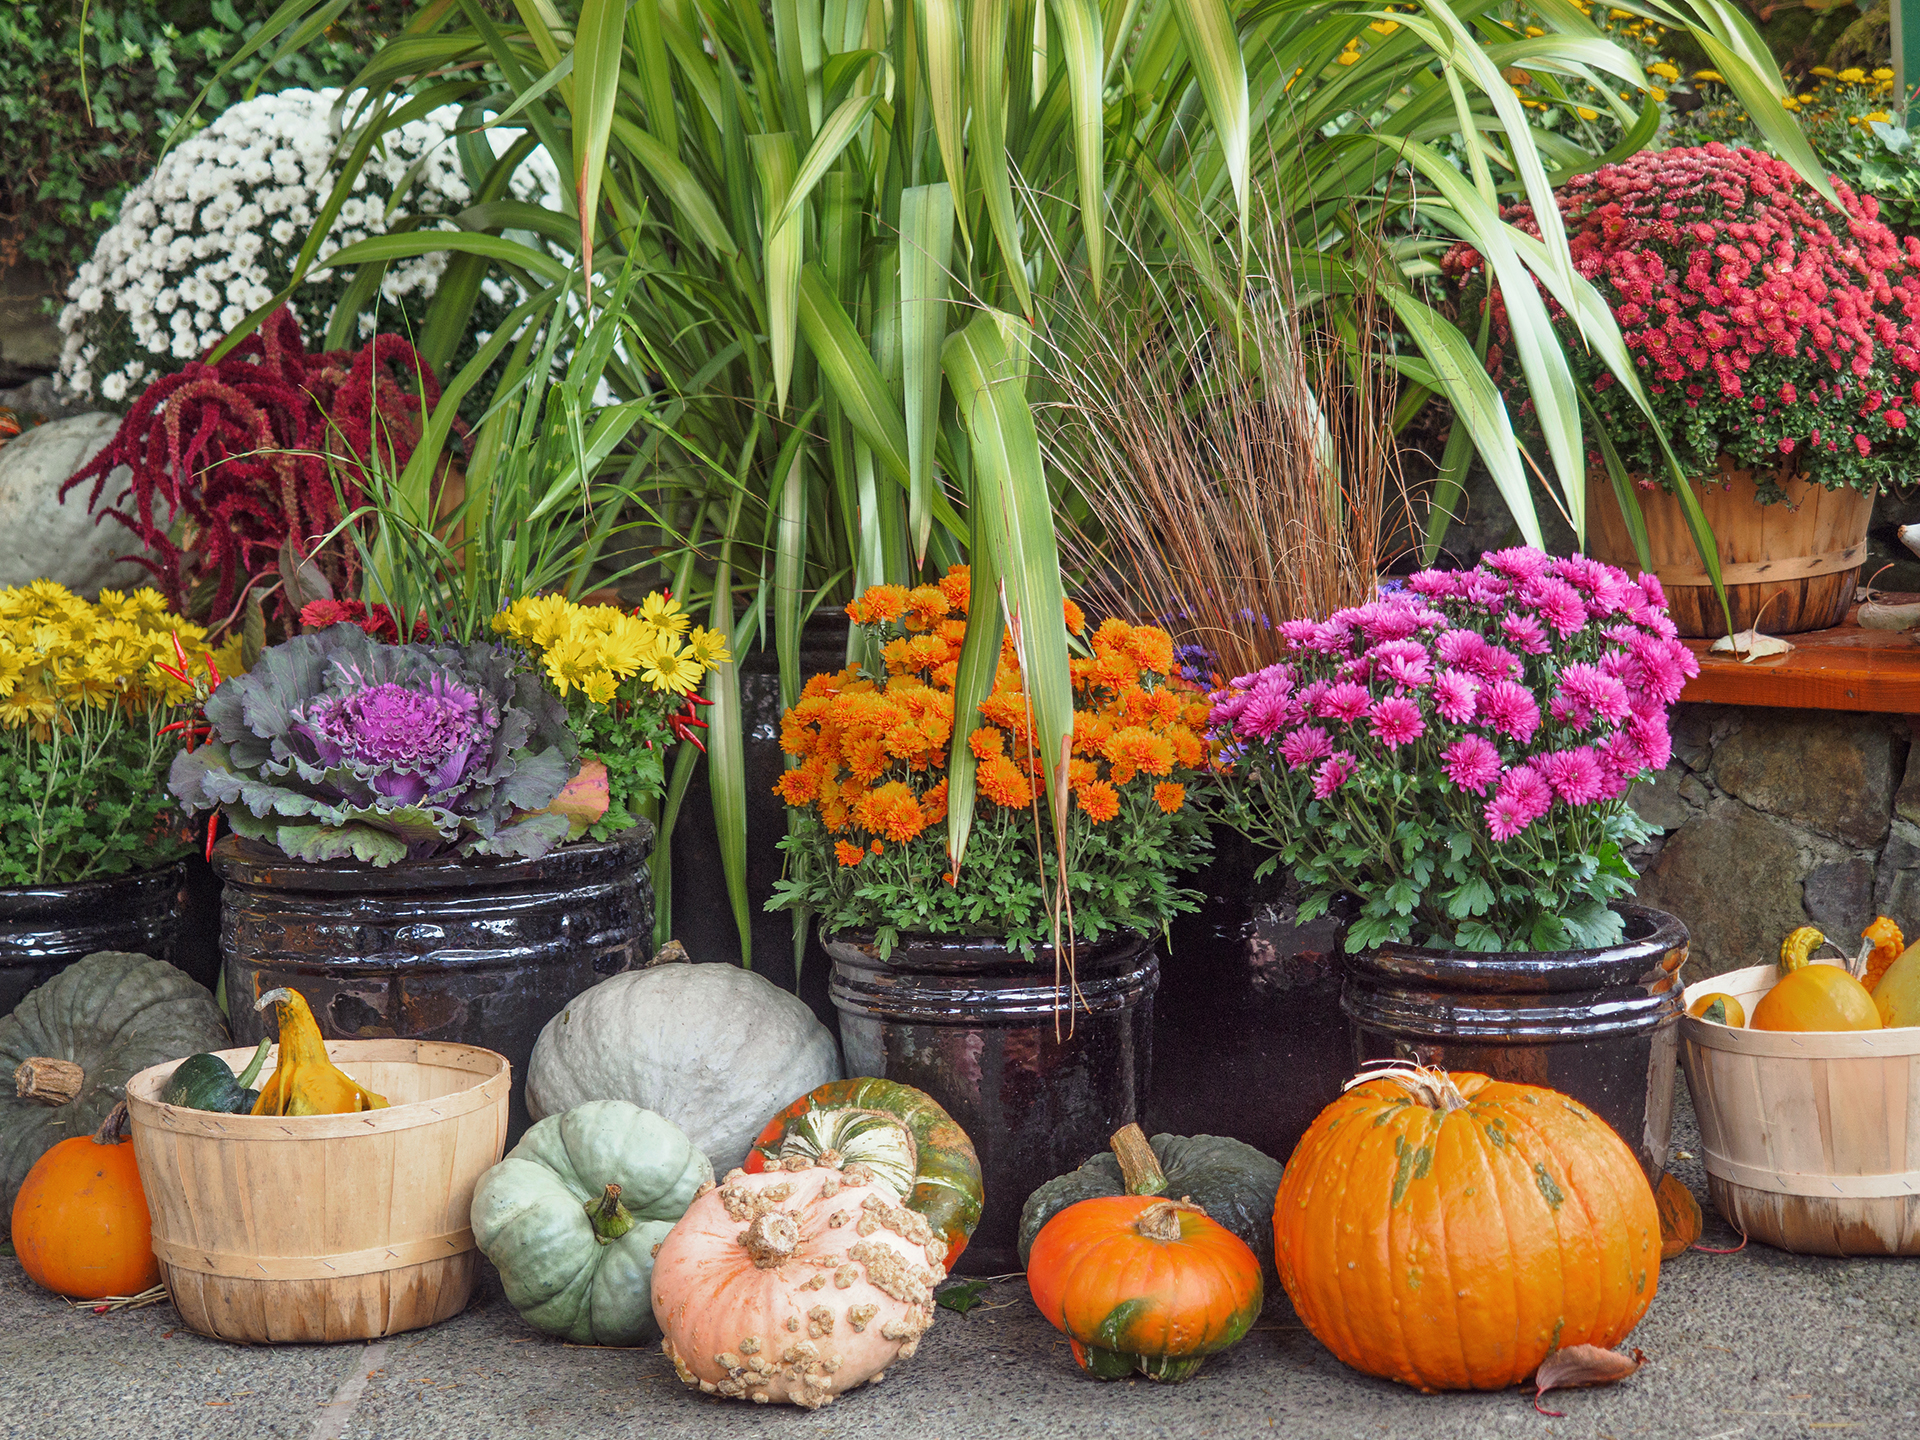 Create A Welcoming Fall Tastic Display With Straw Bales Mums Pumpkins And Decorative Gourds You Can Add Visual Impact Bold Seasonal Colors